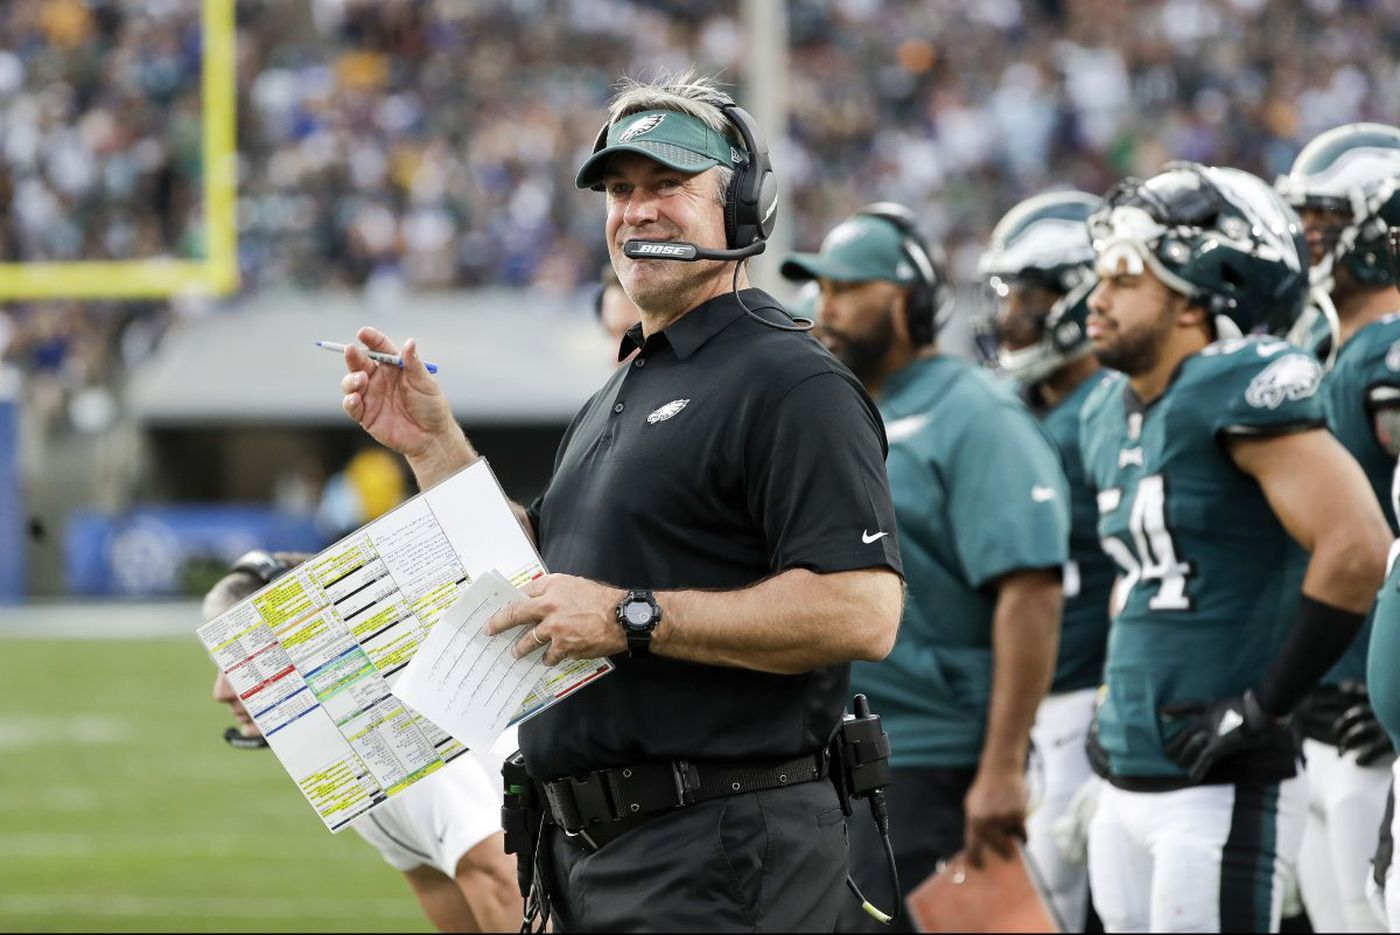 Eagles' Doug Pederson should be Coach of the Year | Marcus Hayes